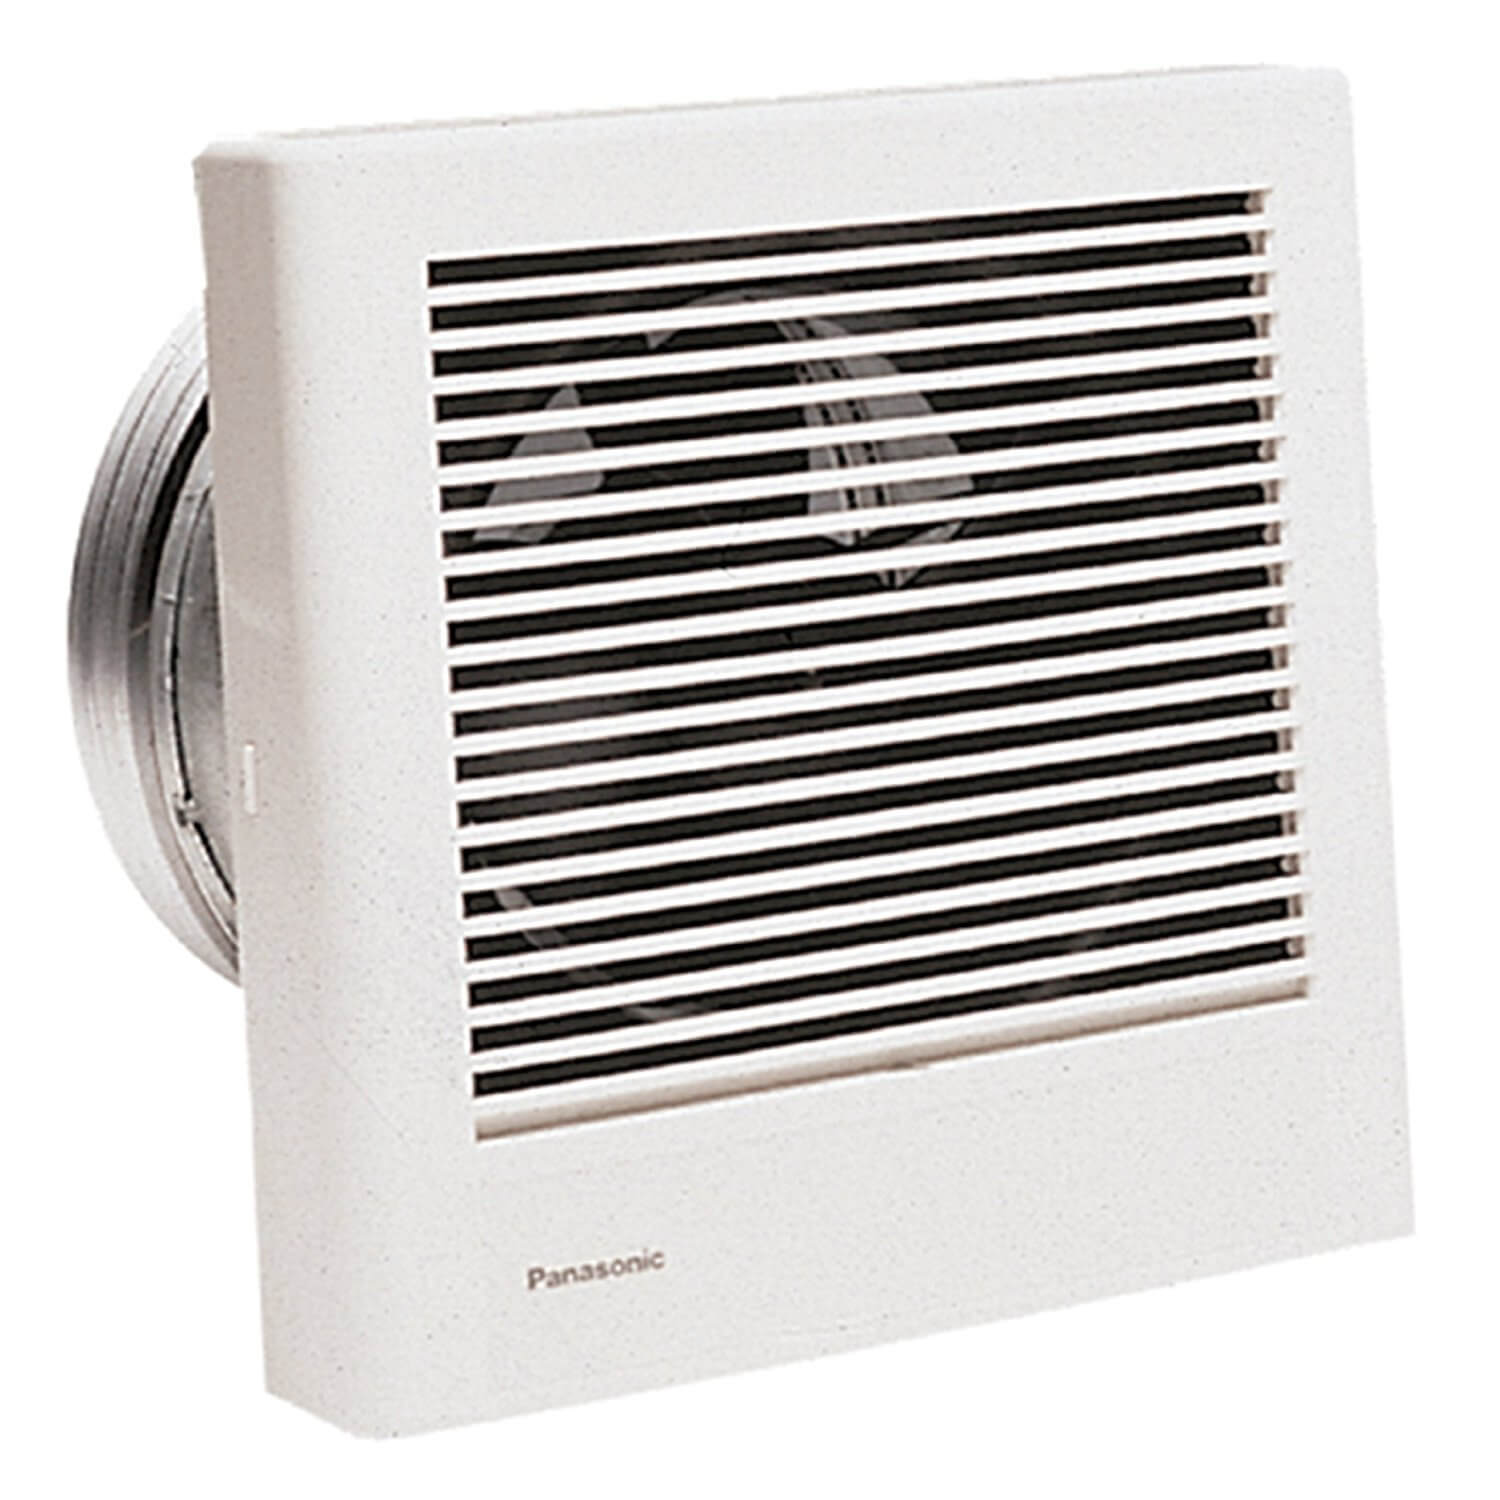 com fans amazon grille abs fv panasonic inch white bathroom designer finish vent dp